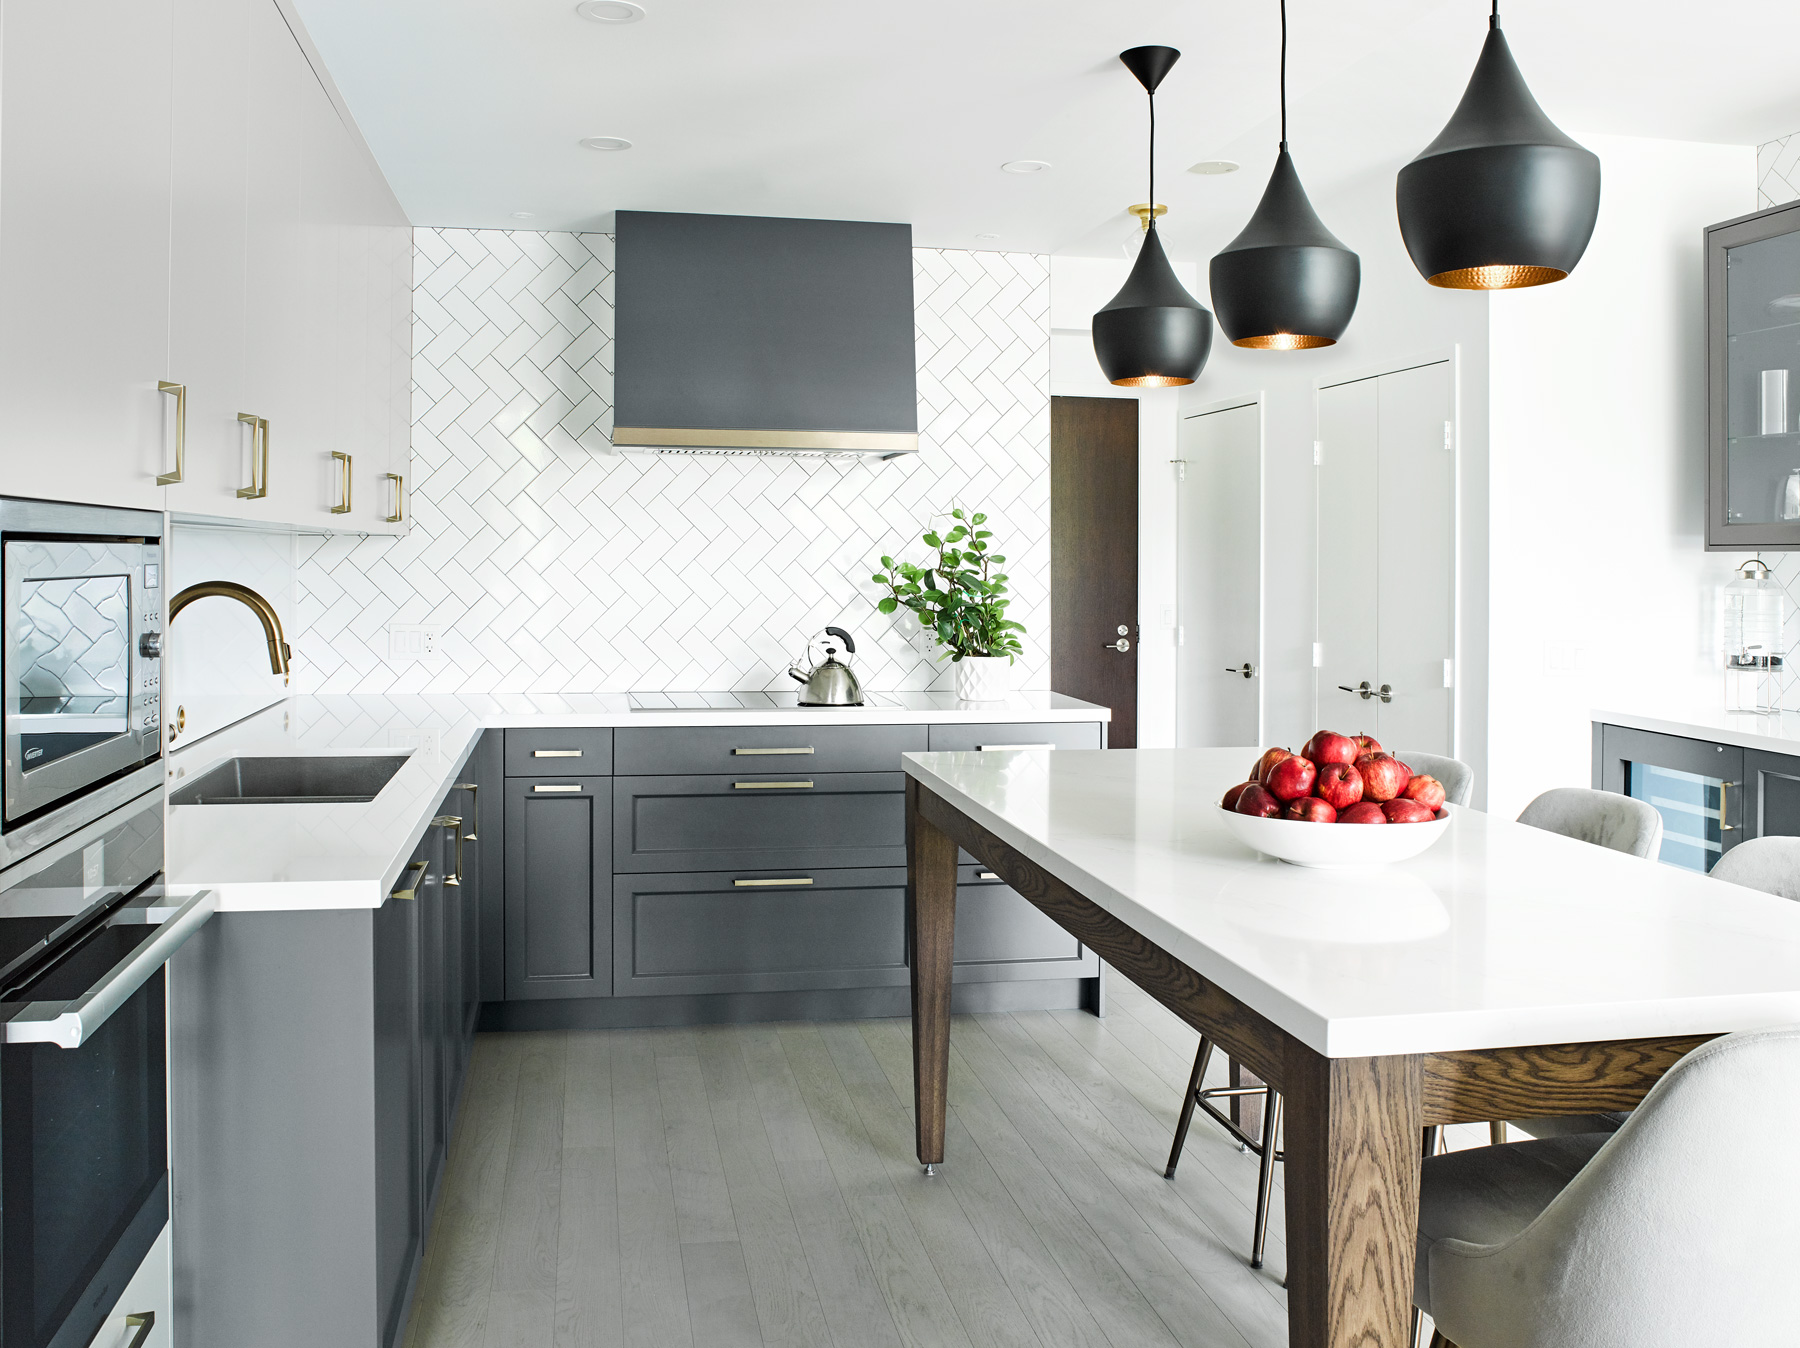 Eat in Kitchen with Tom Dixon Lights